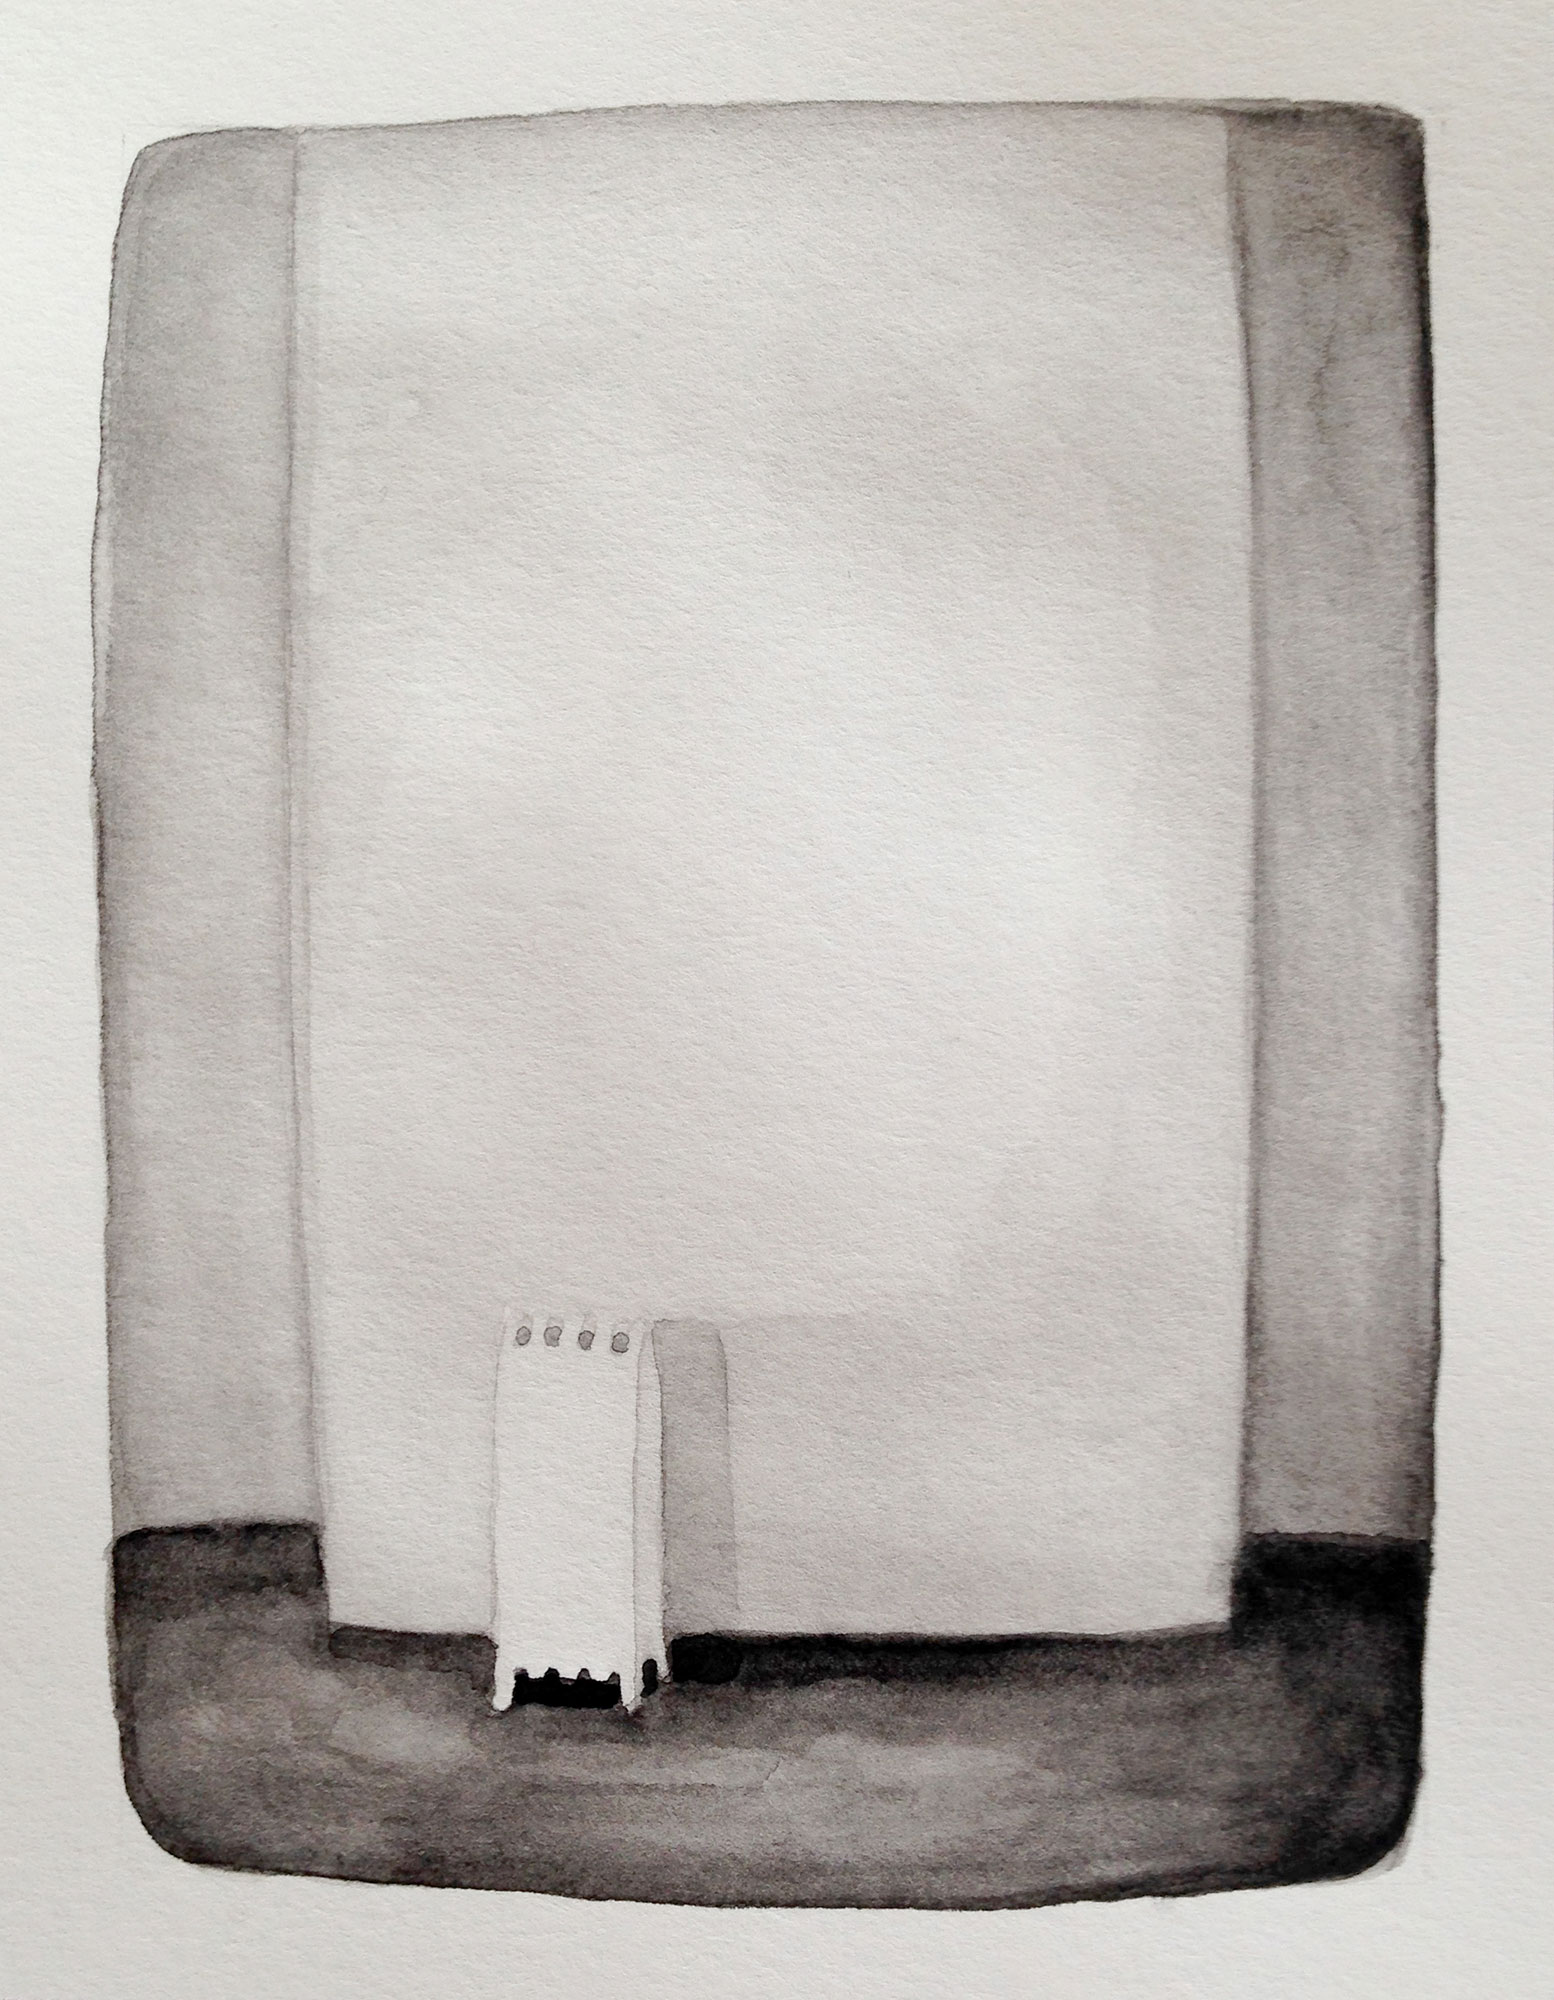 Radiator 3, 2015, 8 x 7 inches, watercolor on paper